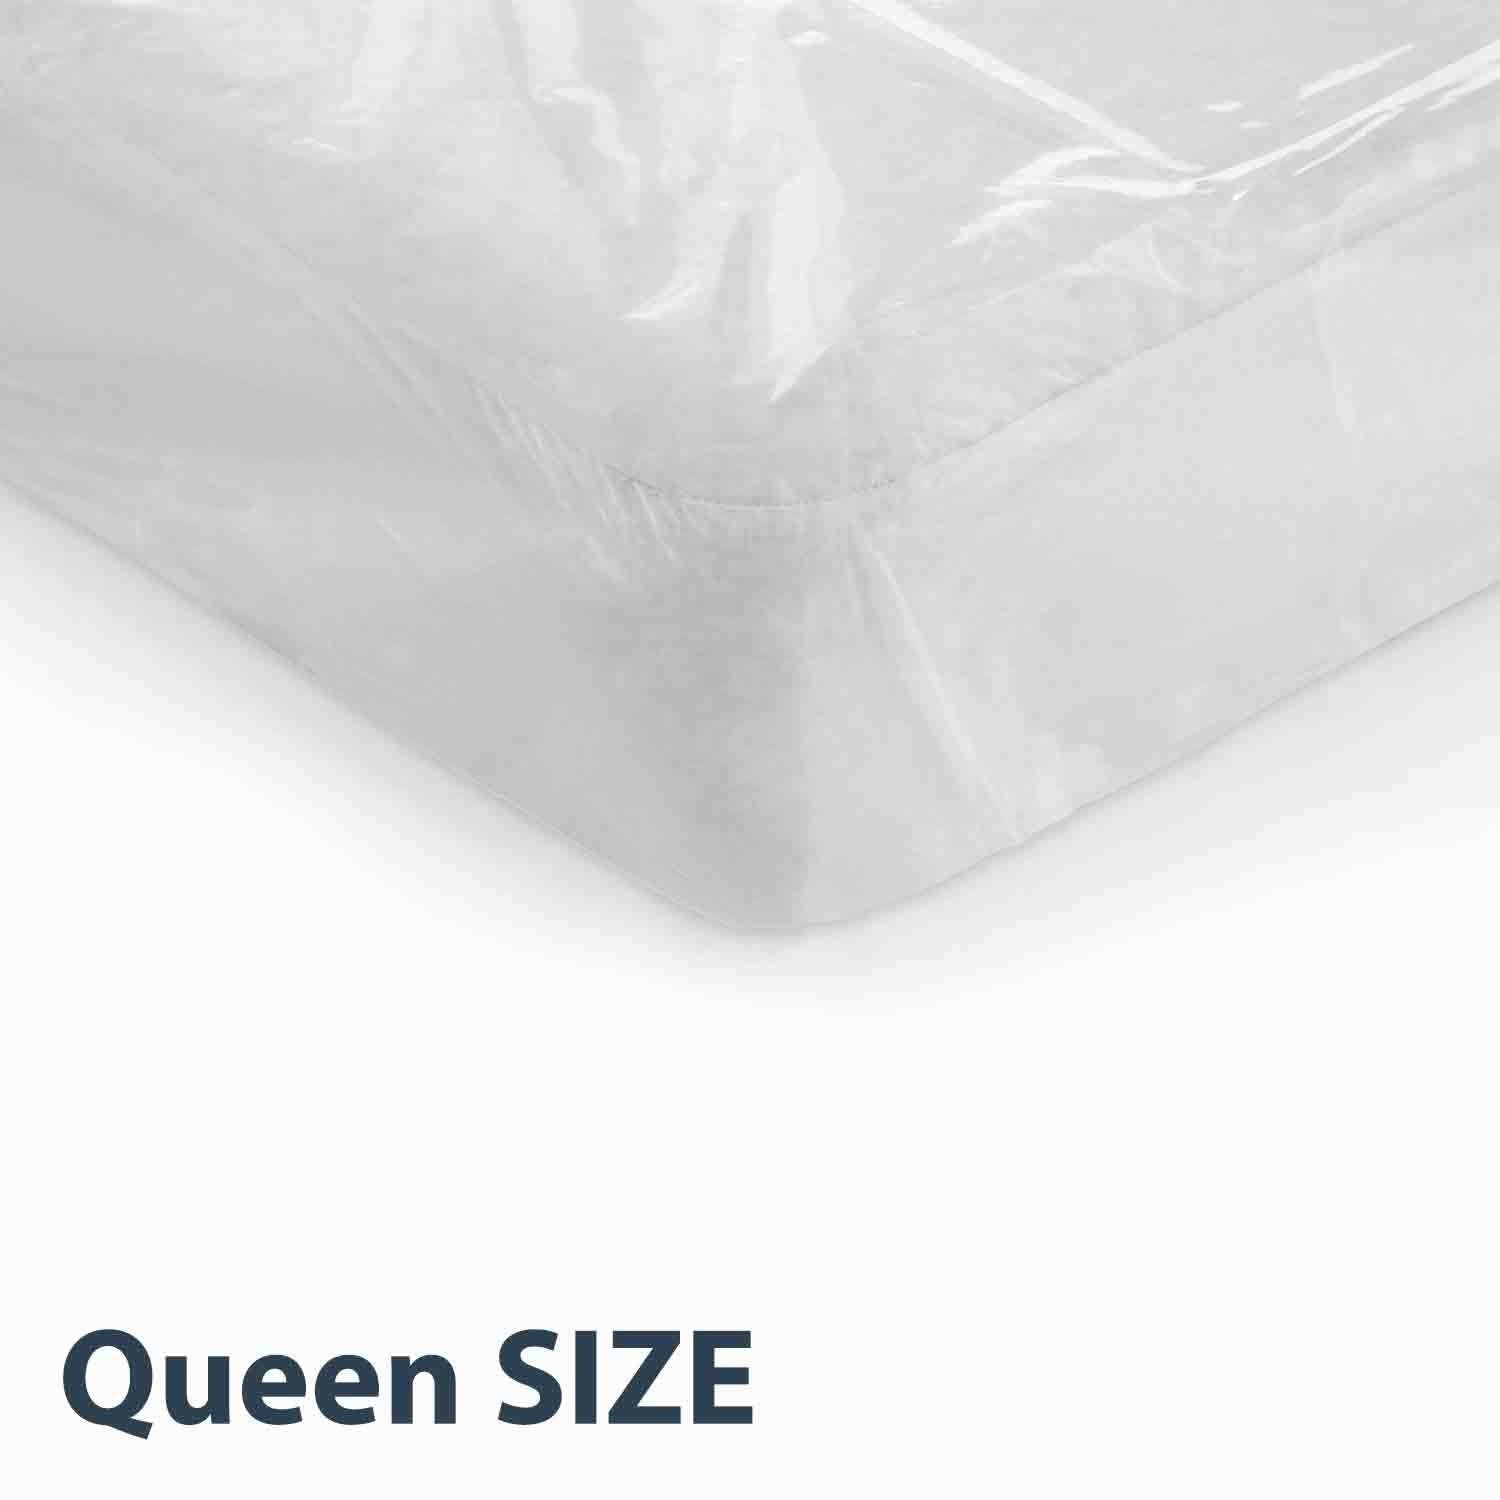 Queen Size Mattress Bag Cover For Protection During Moving